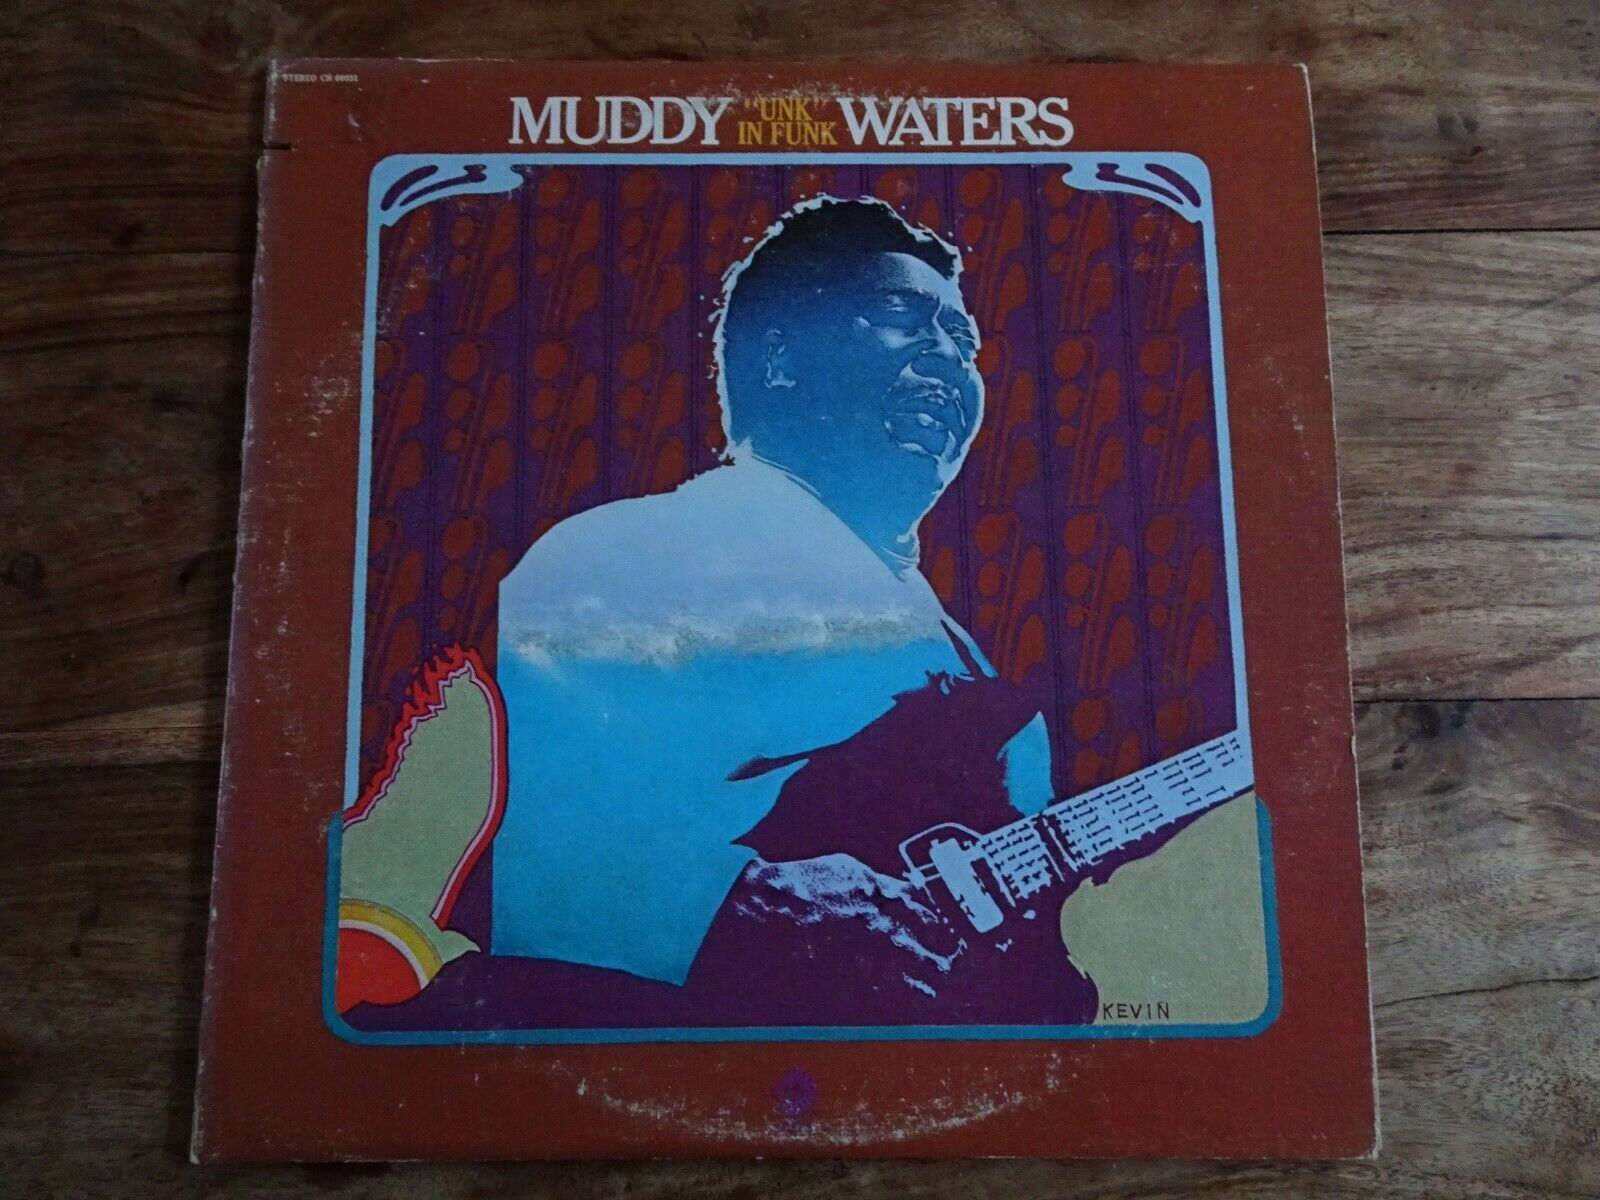 MUDDY WATERS Unk In Funk USA CHESS 1977 RE-ISSUE VINYL LP